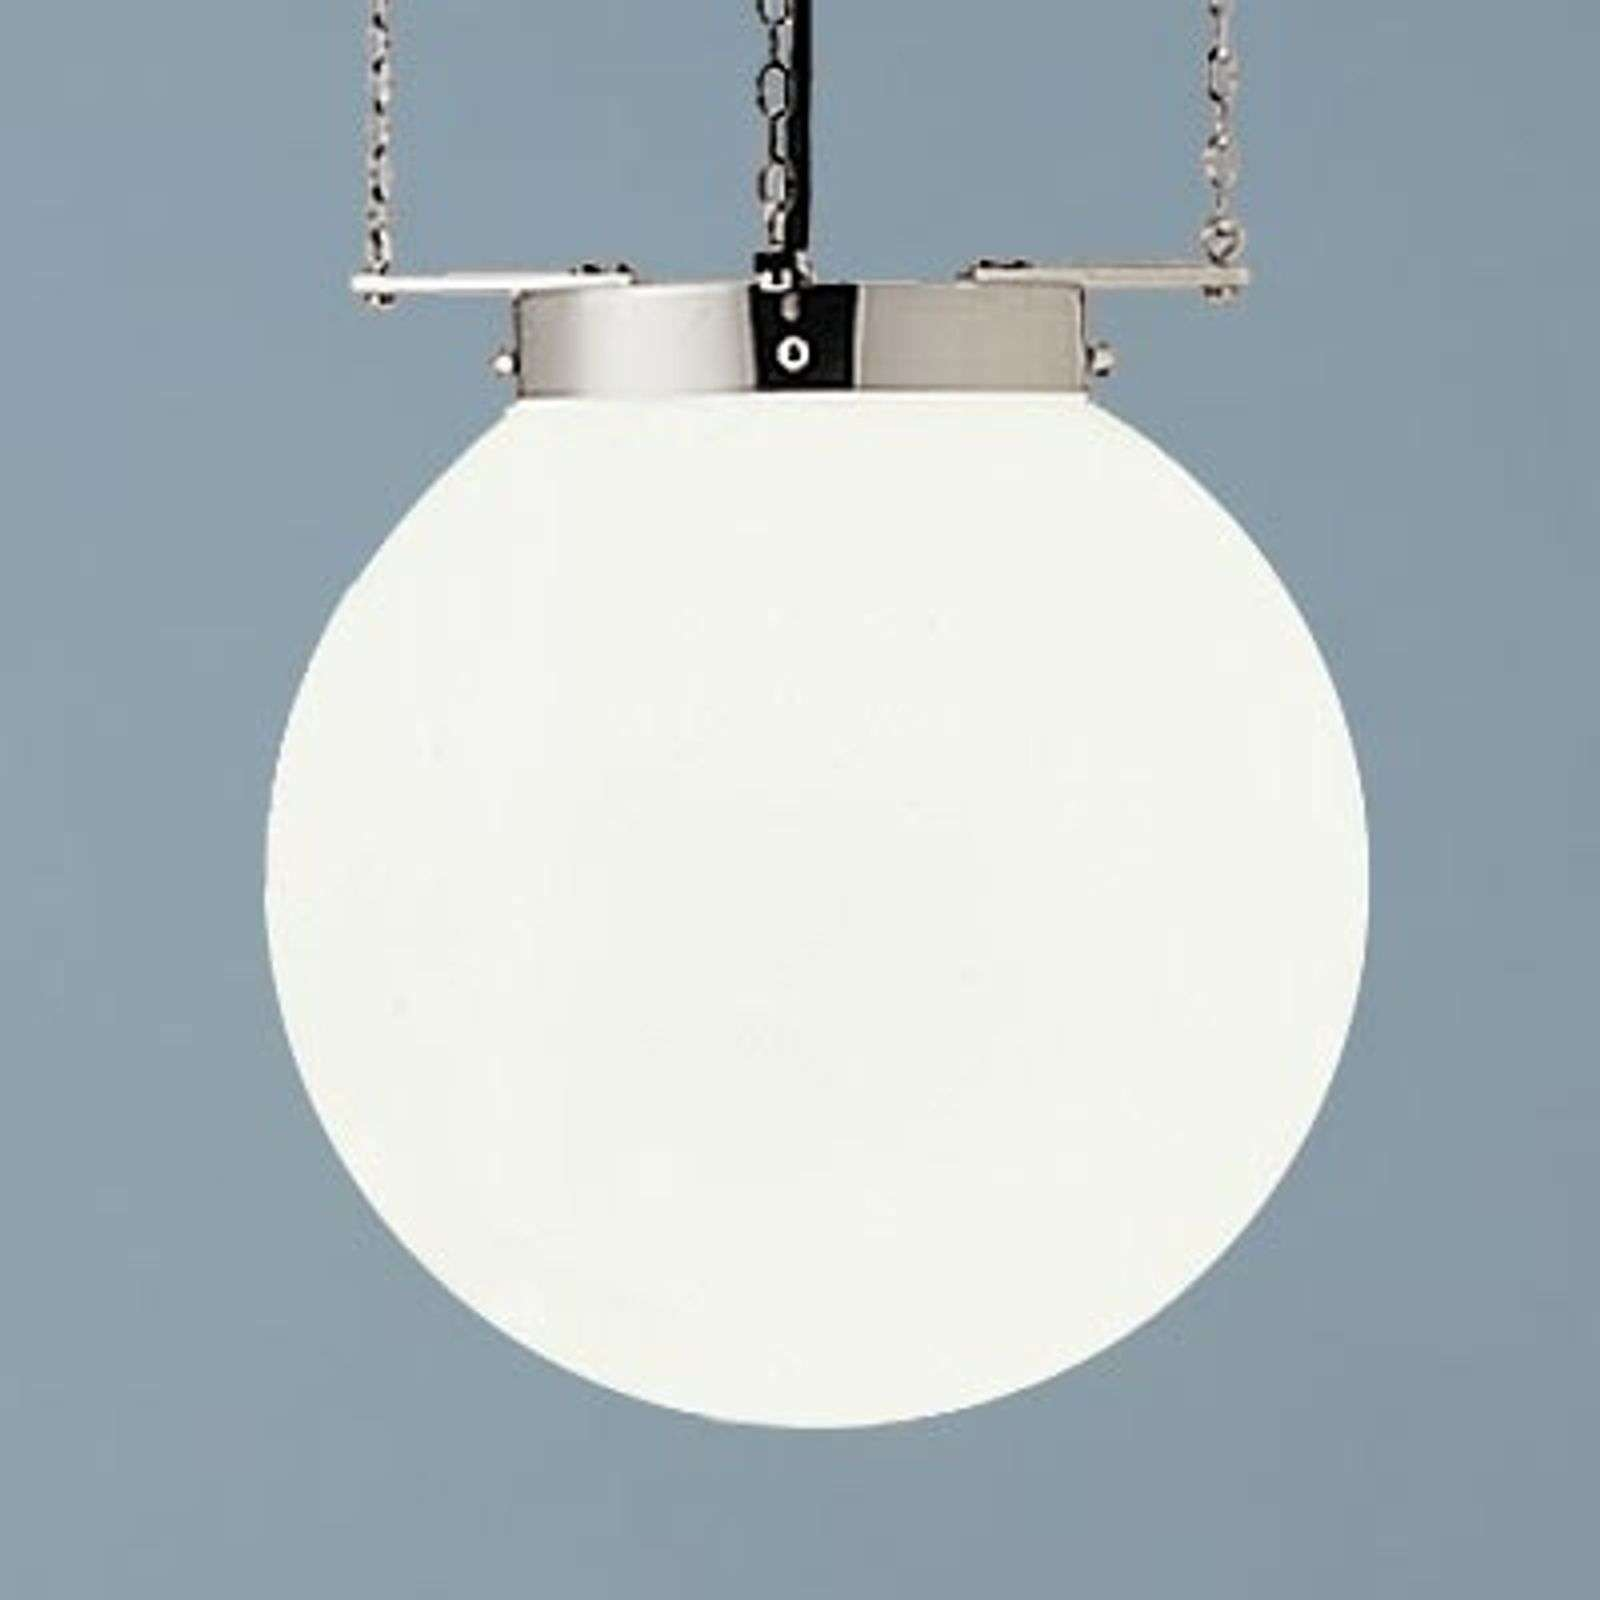 Suspension nickel style Bauhaus 40 cm